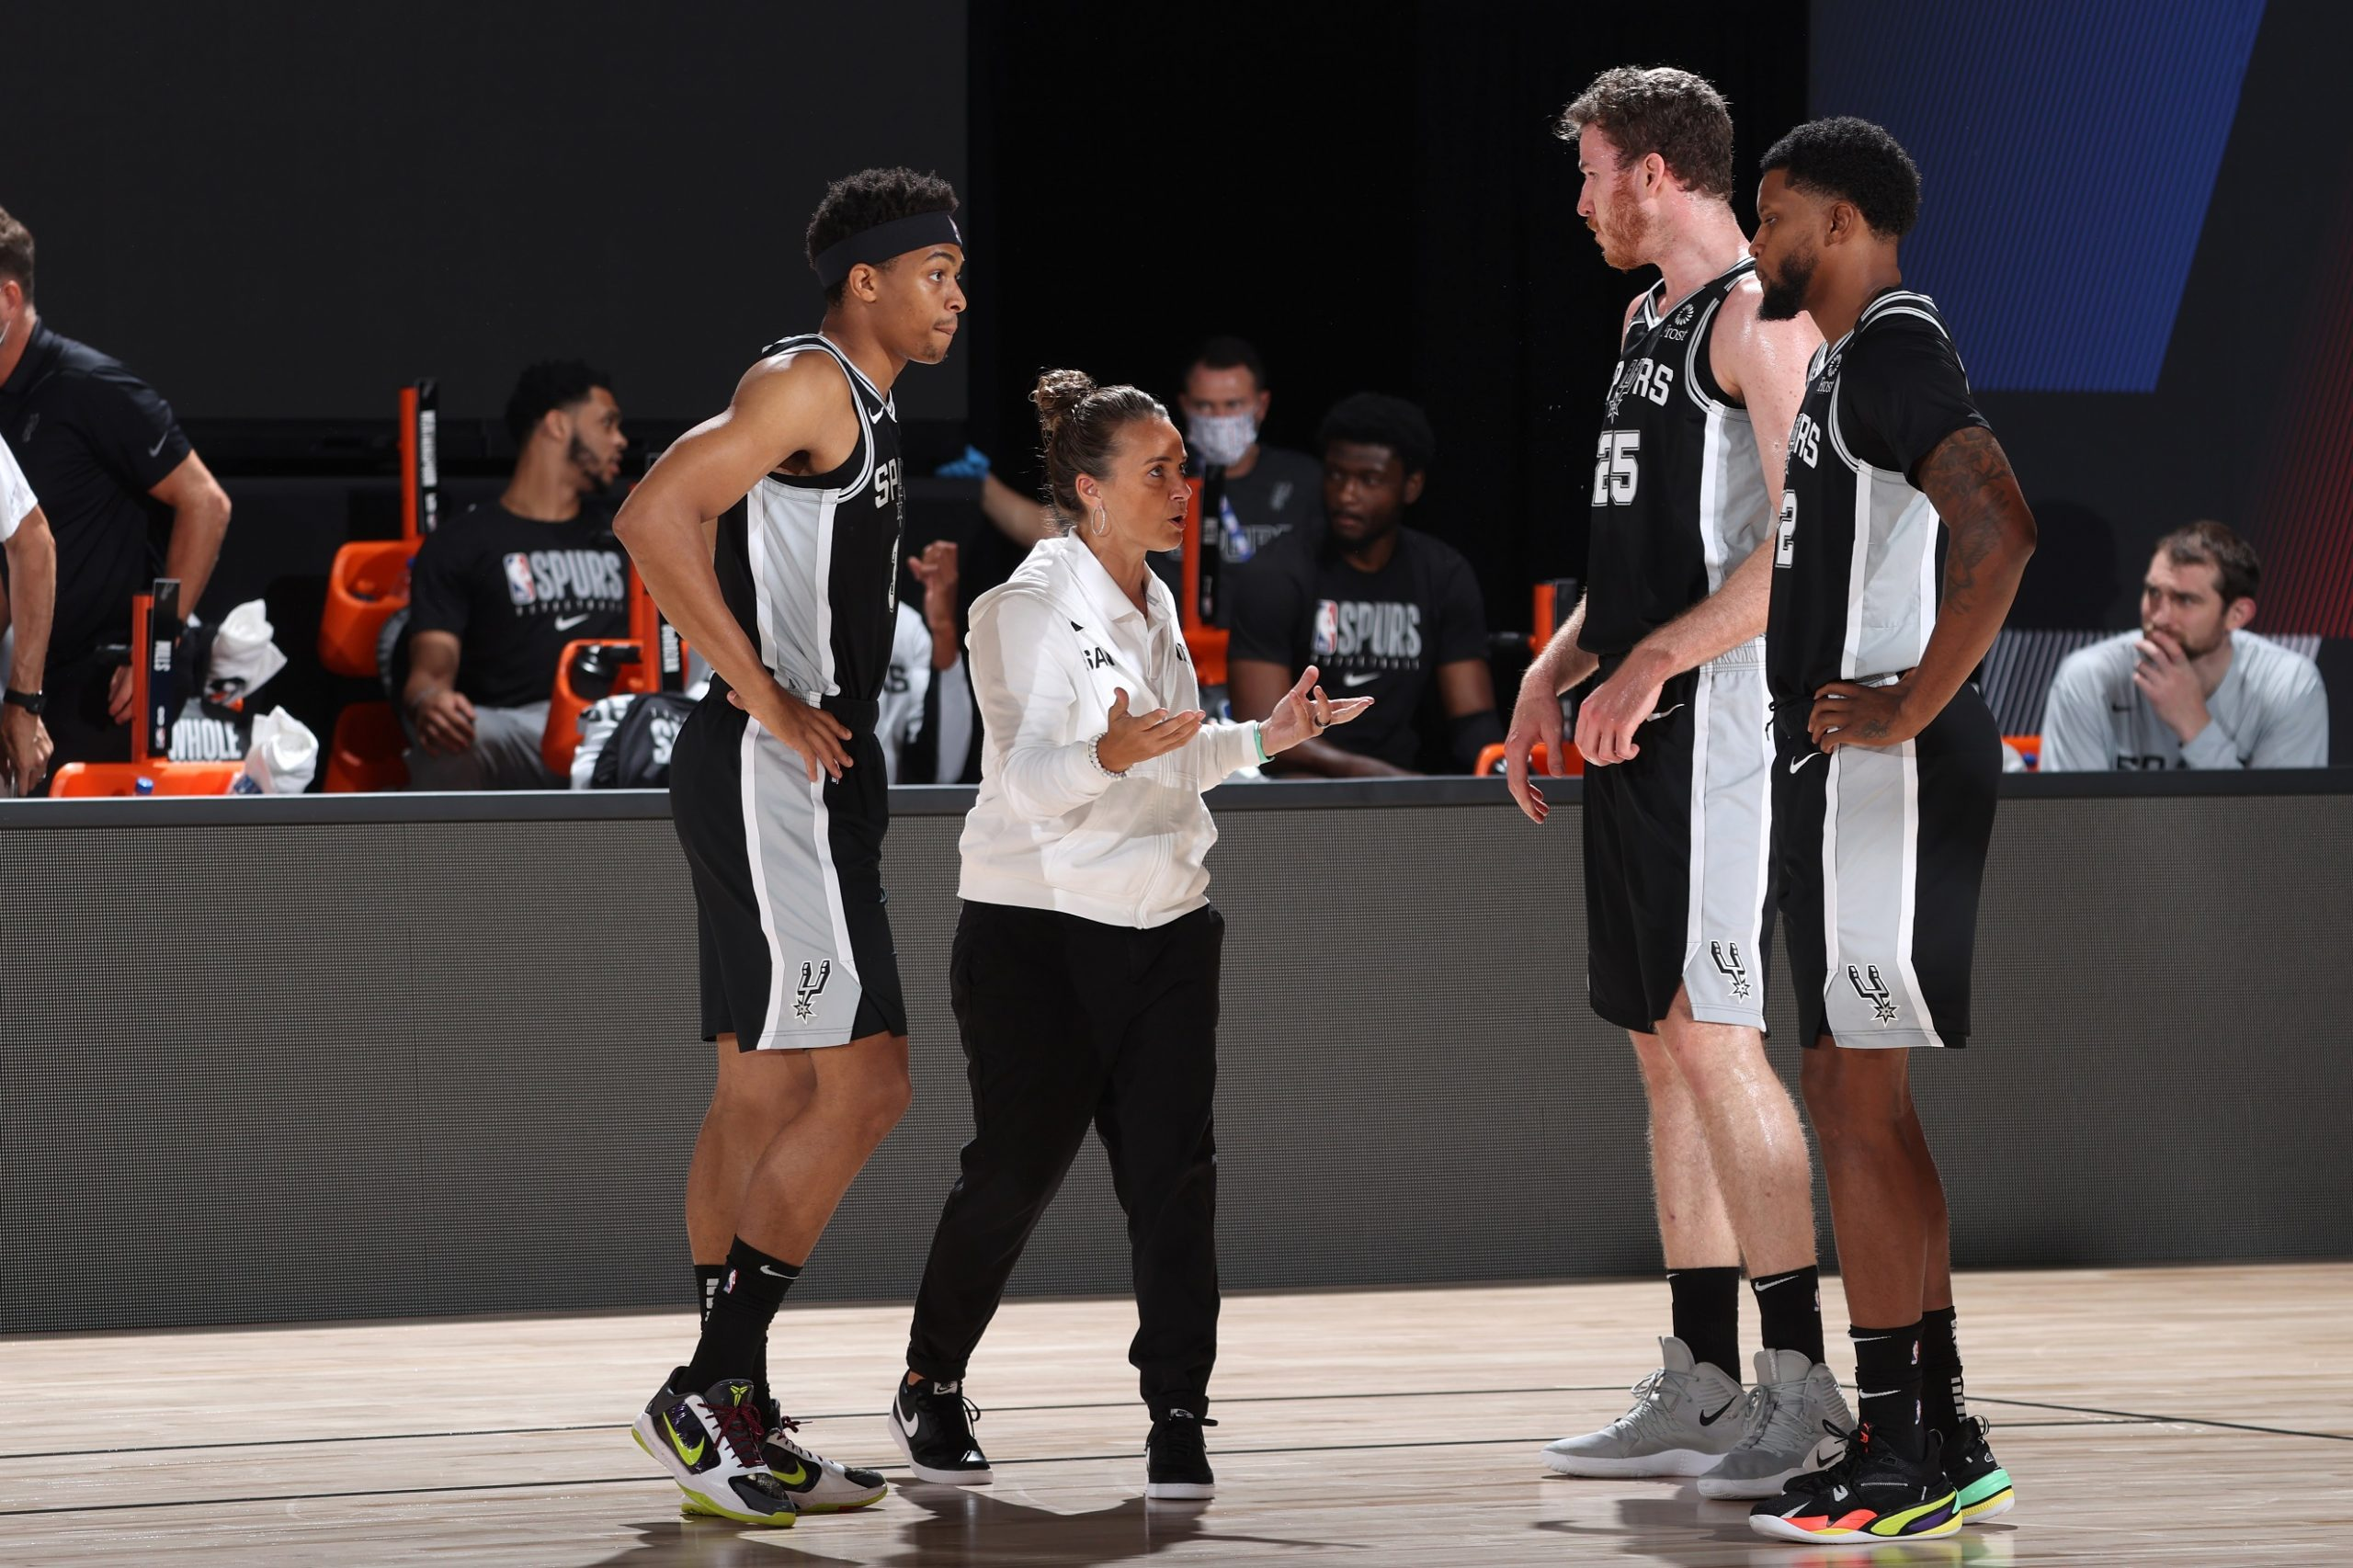 ORLANDO, FL - JULY 23: Assistant coach Becky Hammon of the San Antonio Spurs talks with her team in the huddle during the game on July 23, 2020 at the Visa Athletic Center at ESPN Wide World of Sports Complex in Orlando, Florida. Copyright 2020 NBAE (Photo by David Sherman/NBAE via Getty Images)